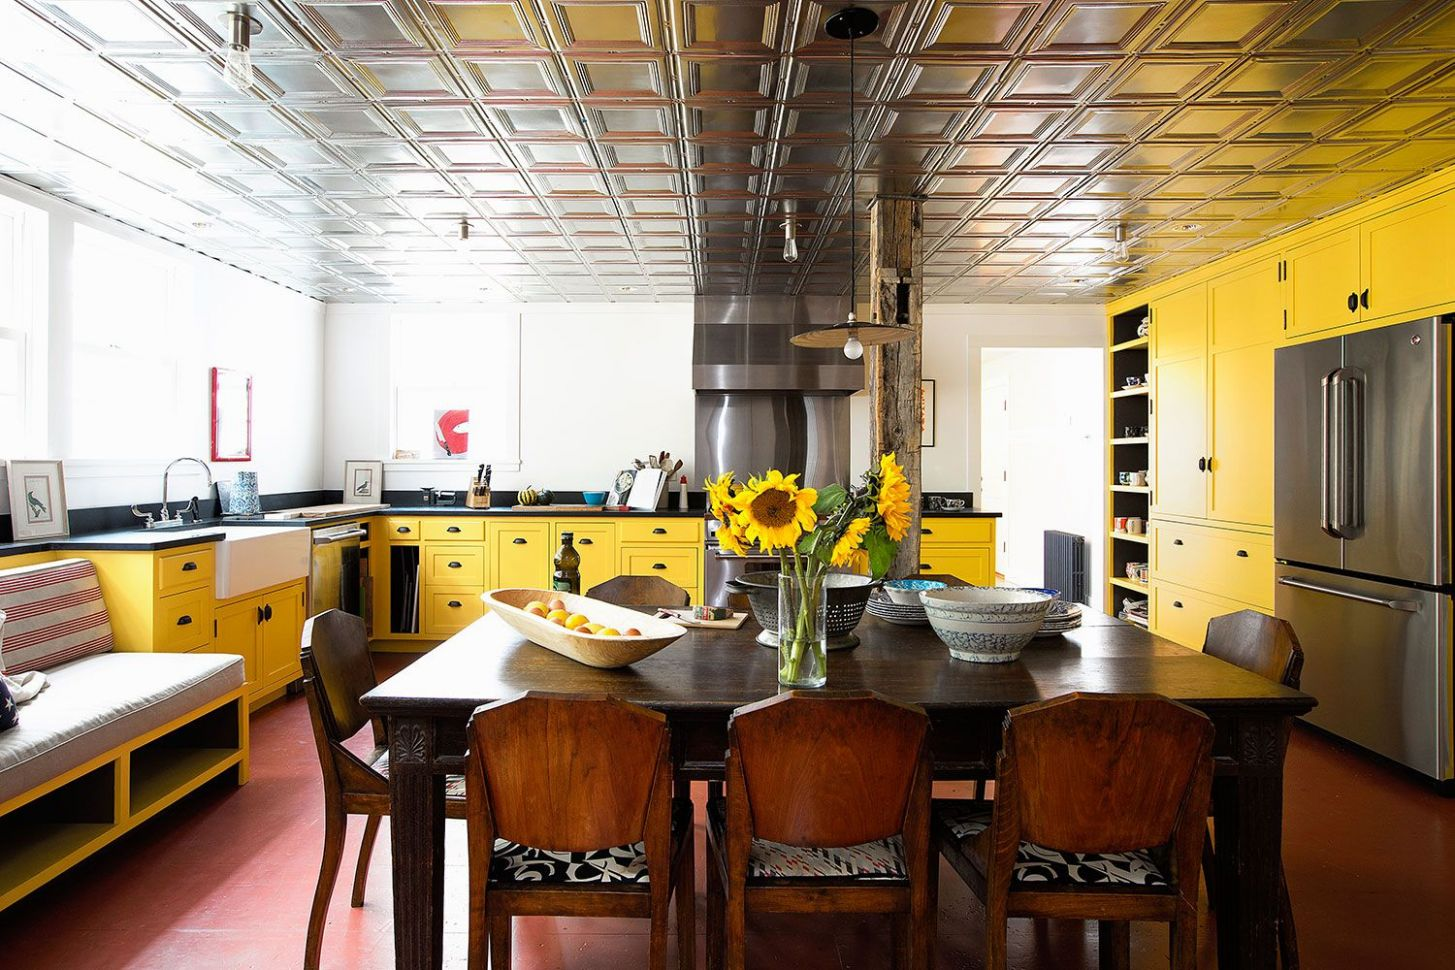 9 Yellow Kitchen Ideas - Decorating Tips for Yellow Colored Kitchens - kitchen ideas yellow